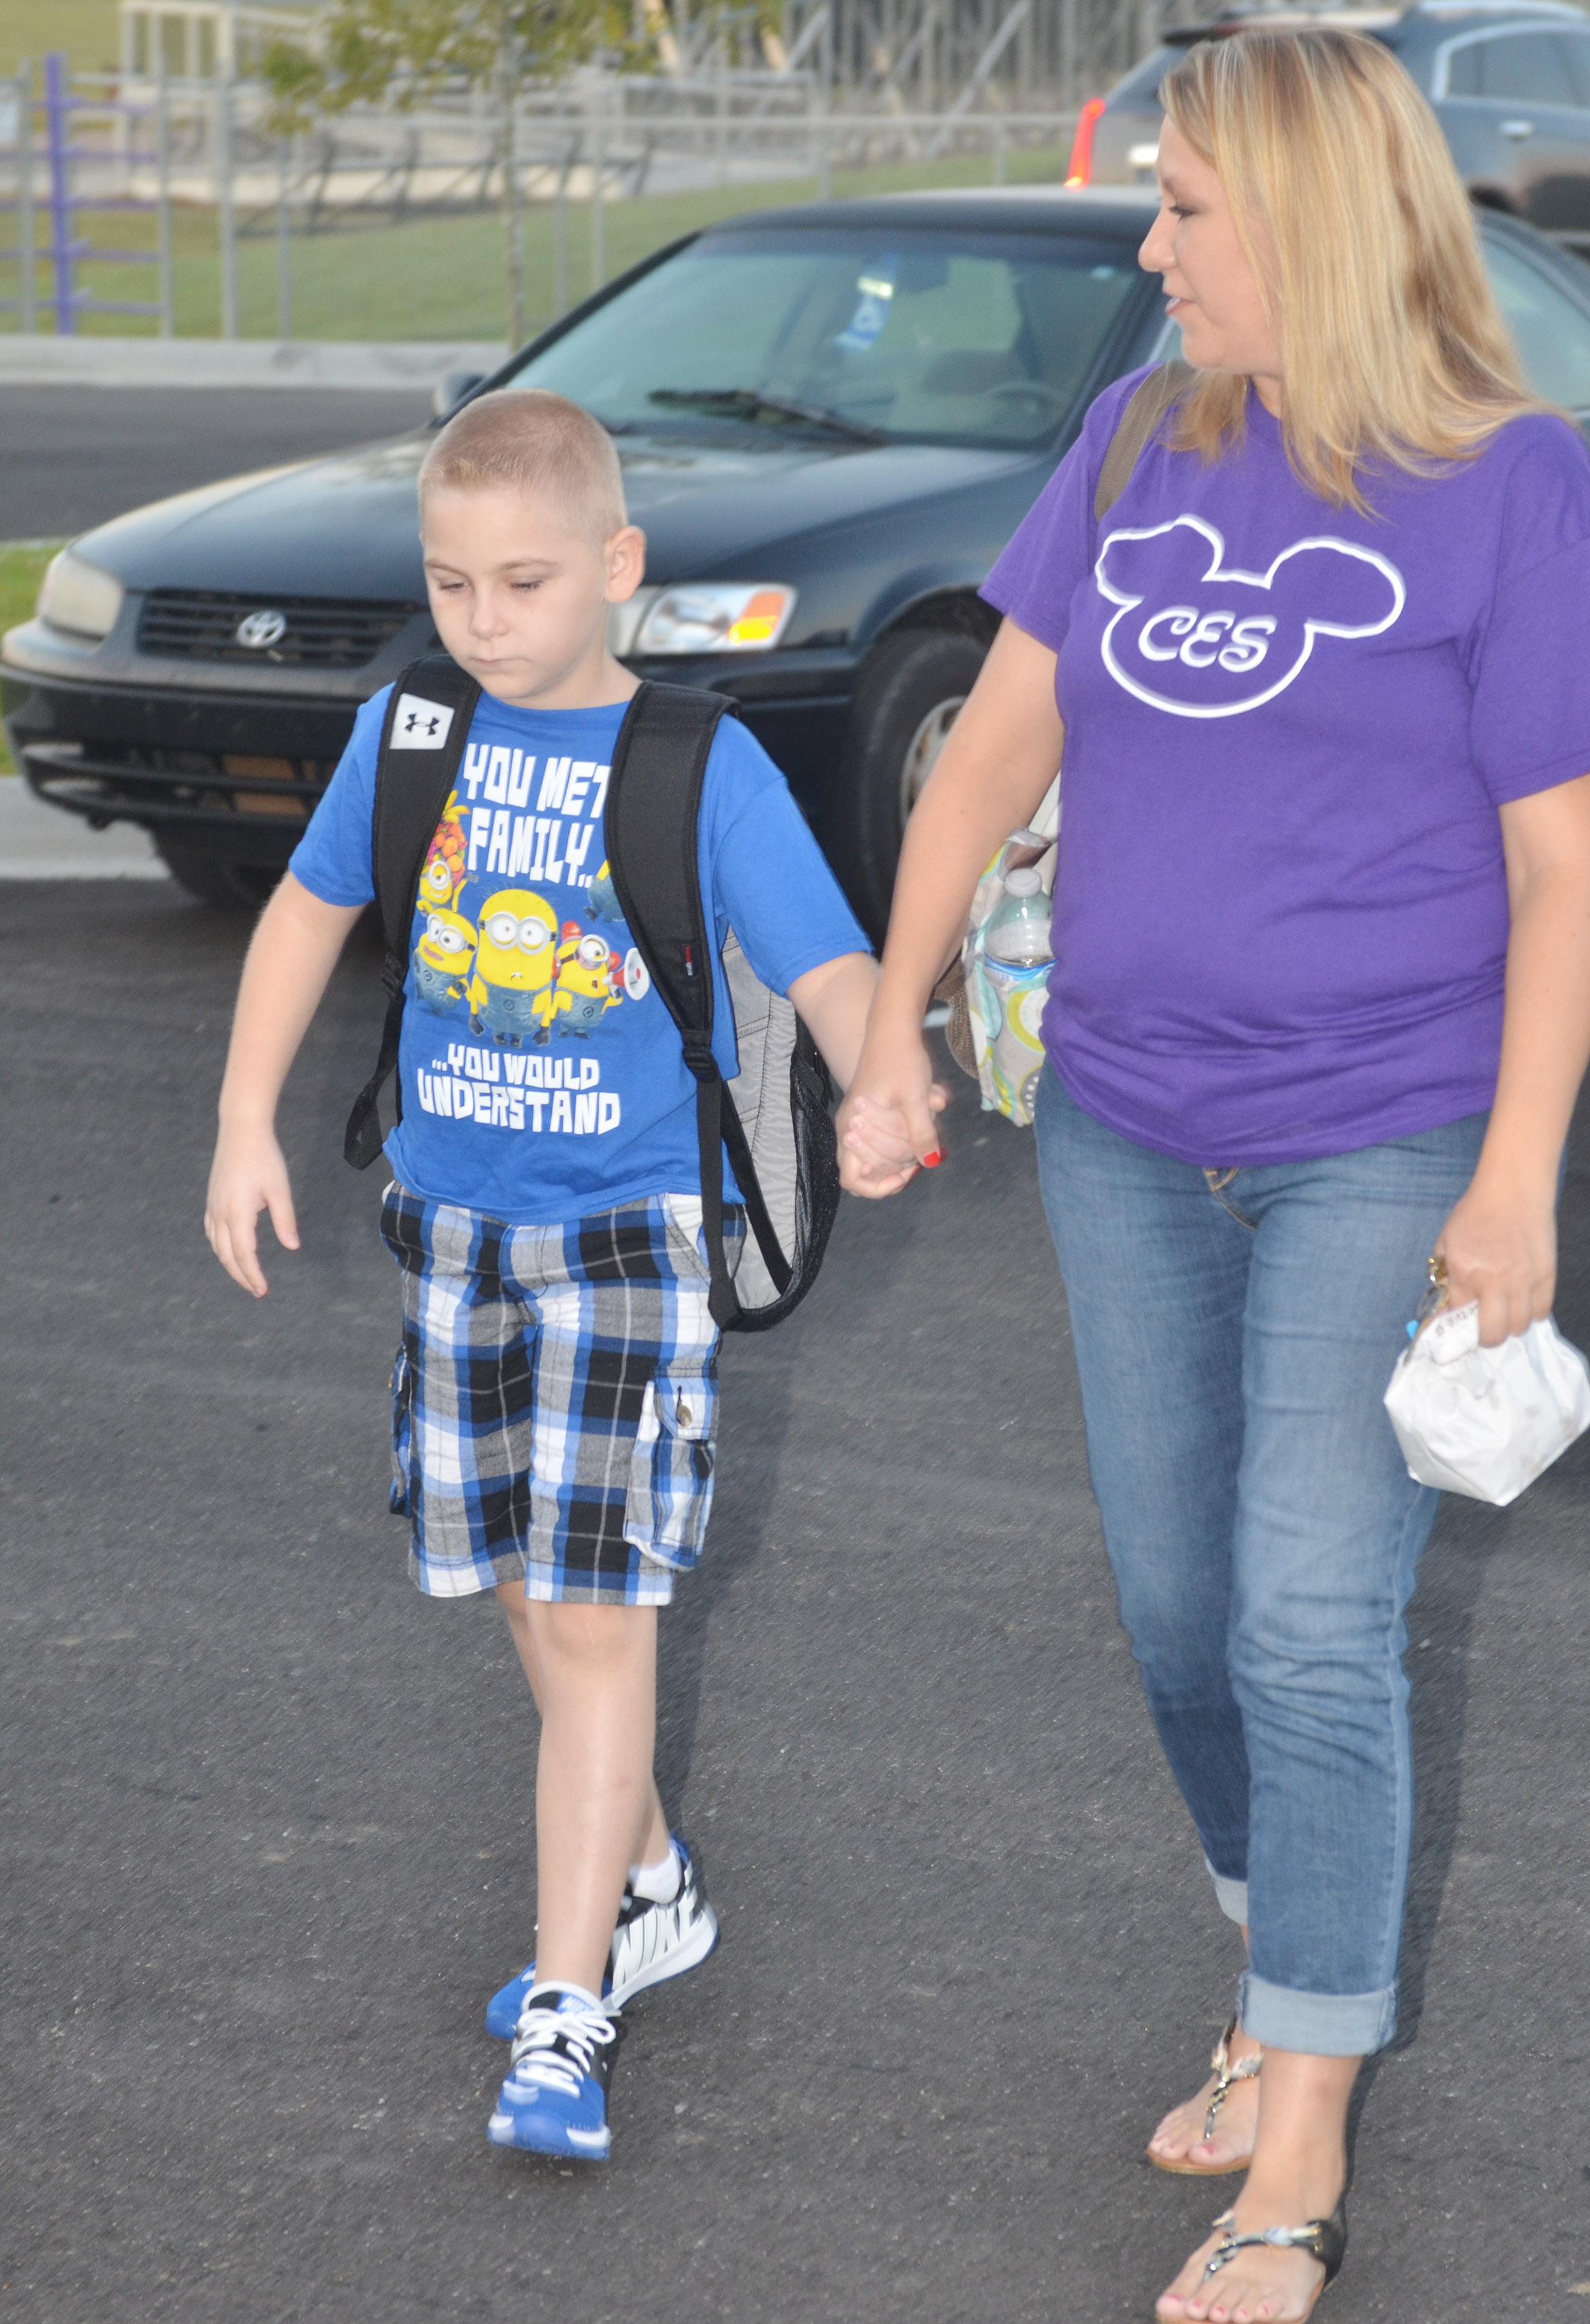 CES first-grade teacher Amanda Greer walks with her son, Joe, who is third-grader at CES, into school.